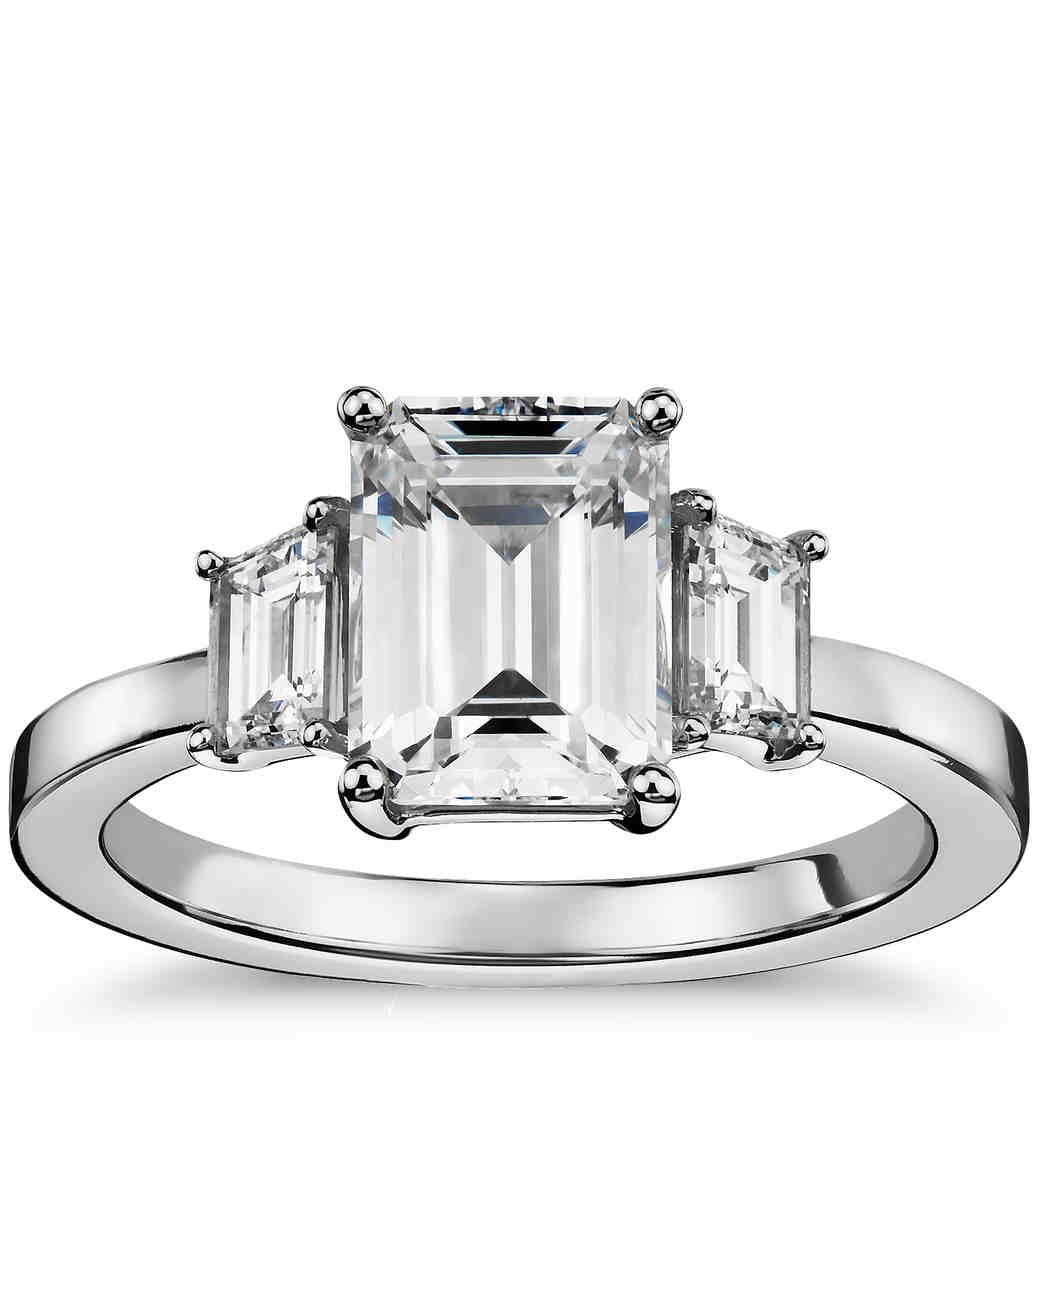 watch carat stone side engagement ring youtube rings emerald cut